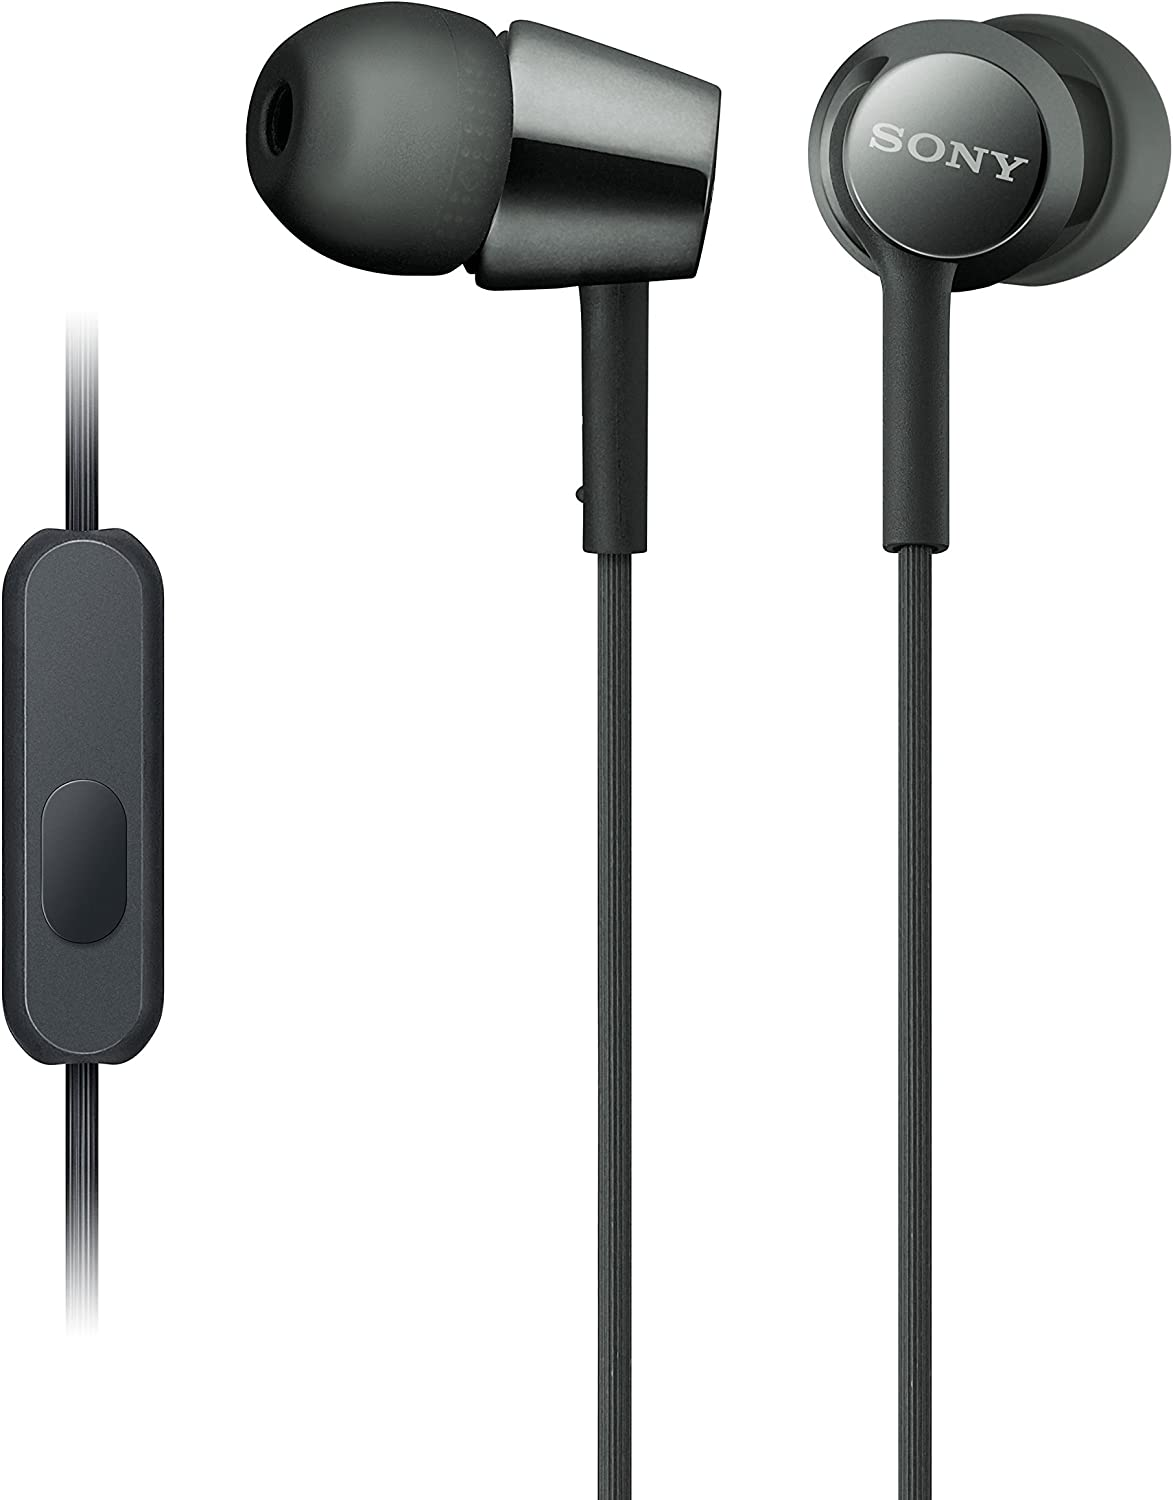 Sony MDREX155AP in-Ear Earbud Headphones/Headset with mic for Phone Call, Black (MDR-EX155AP/B)